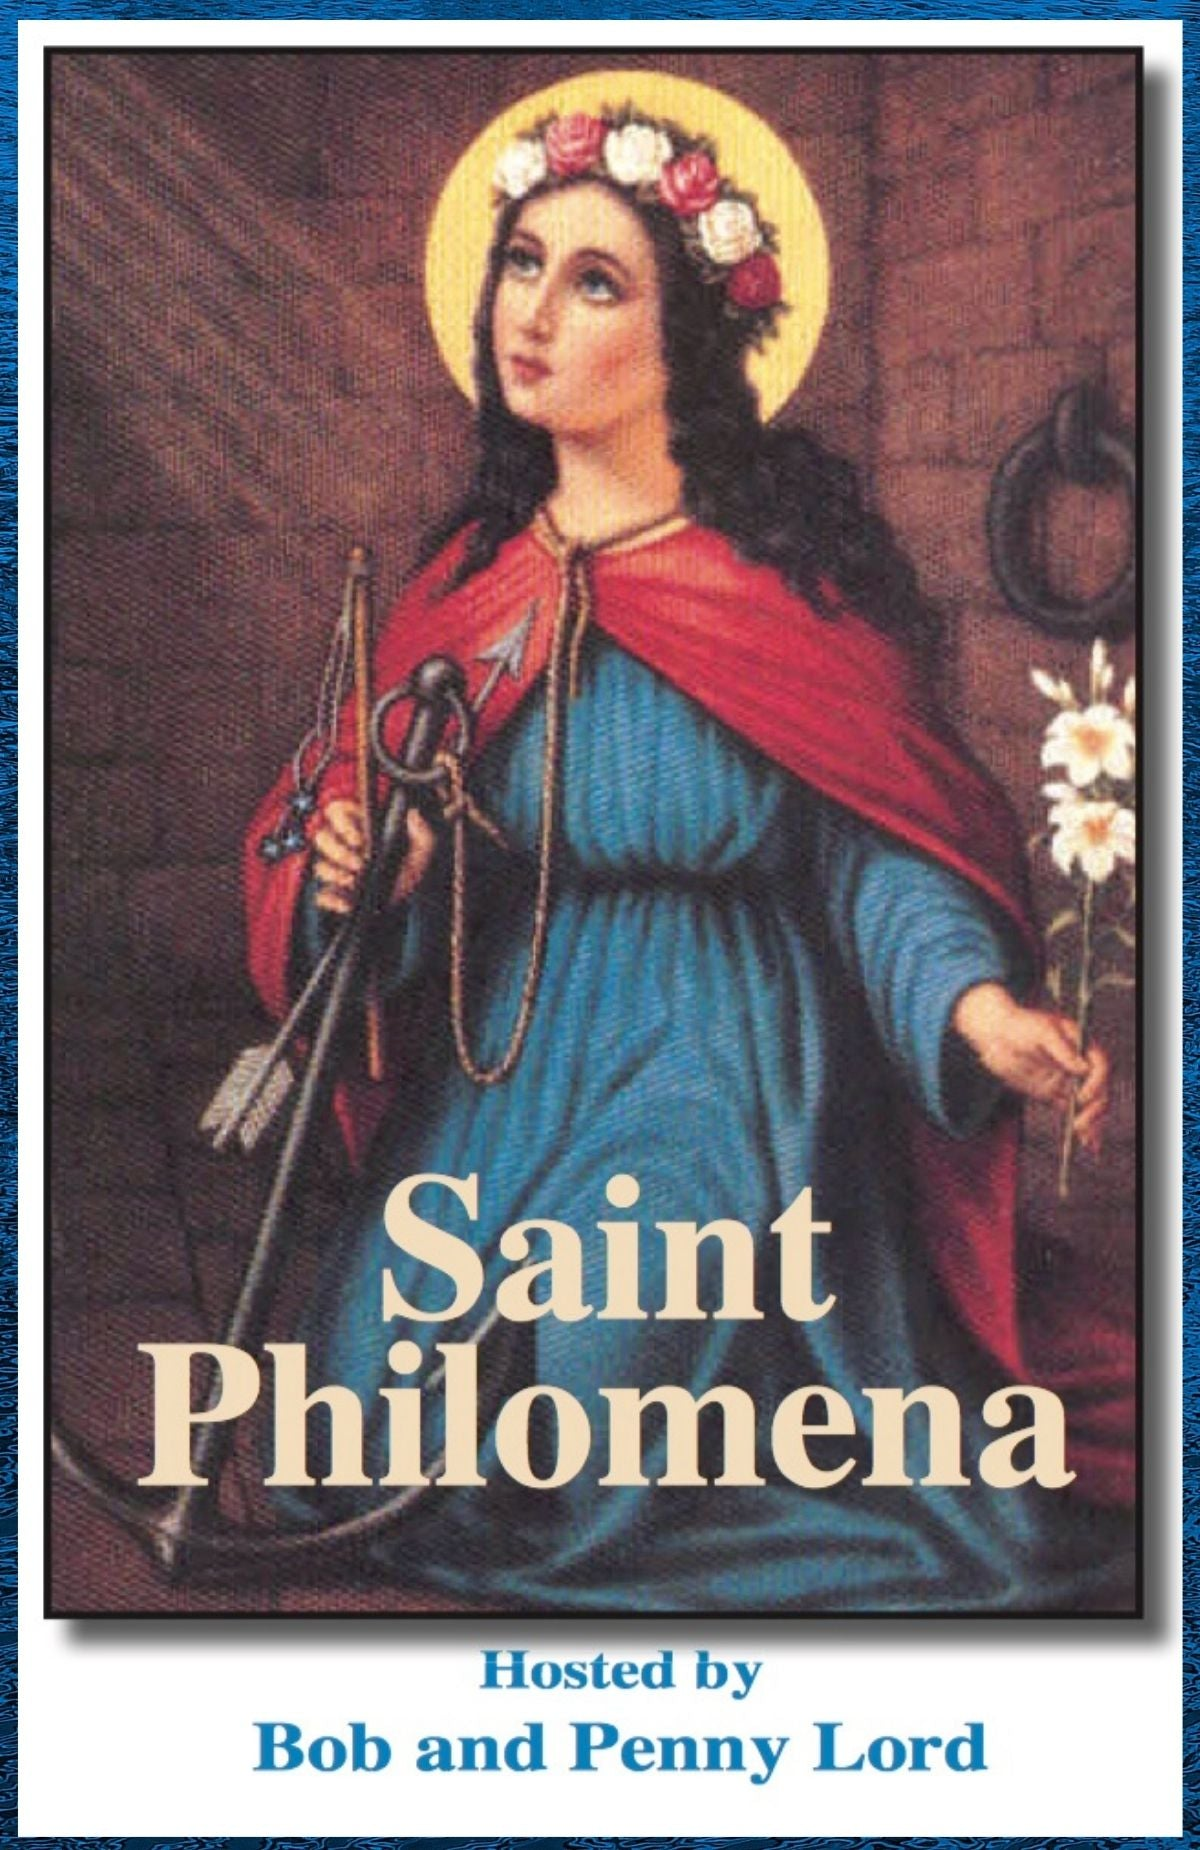 Saint Philomena DVD - Bob and Penny Lord